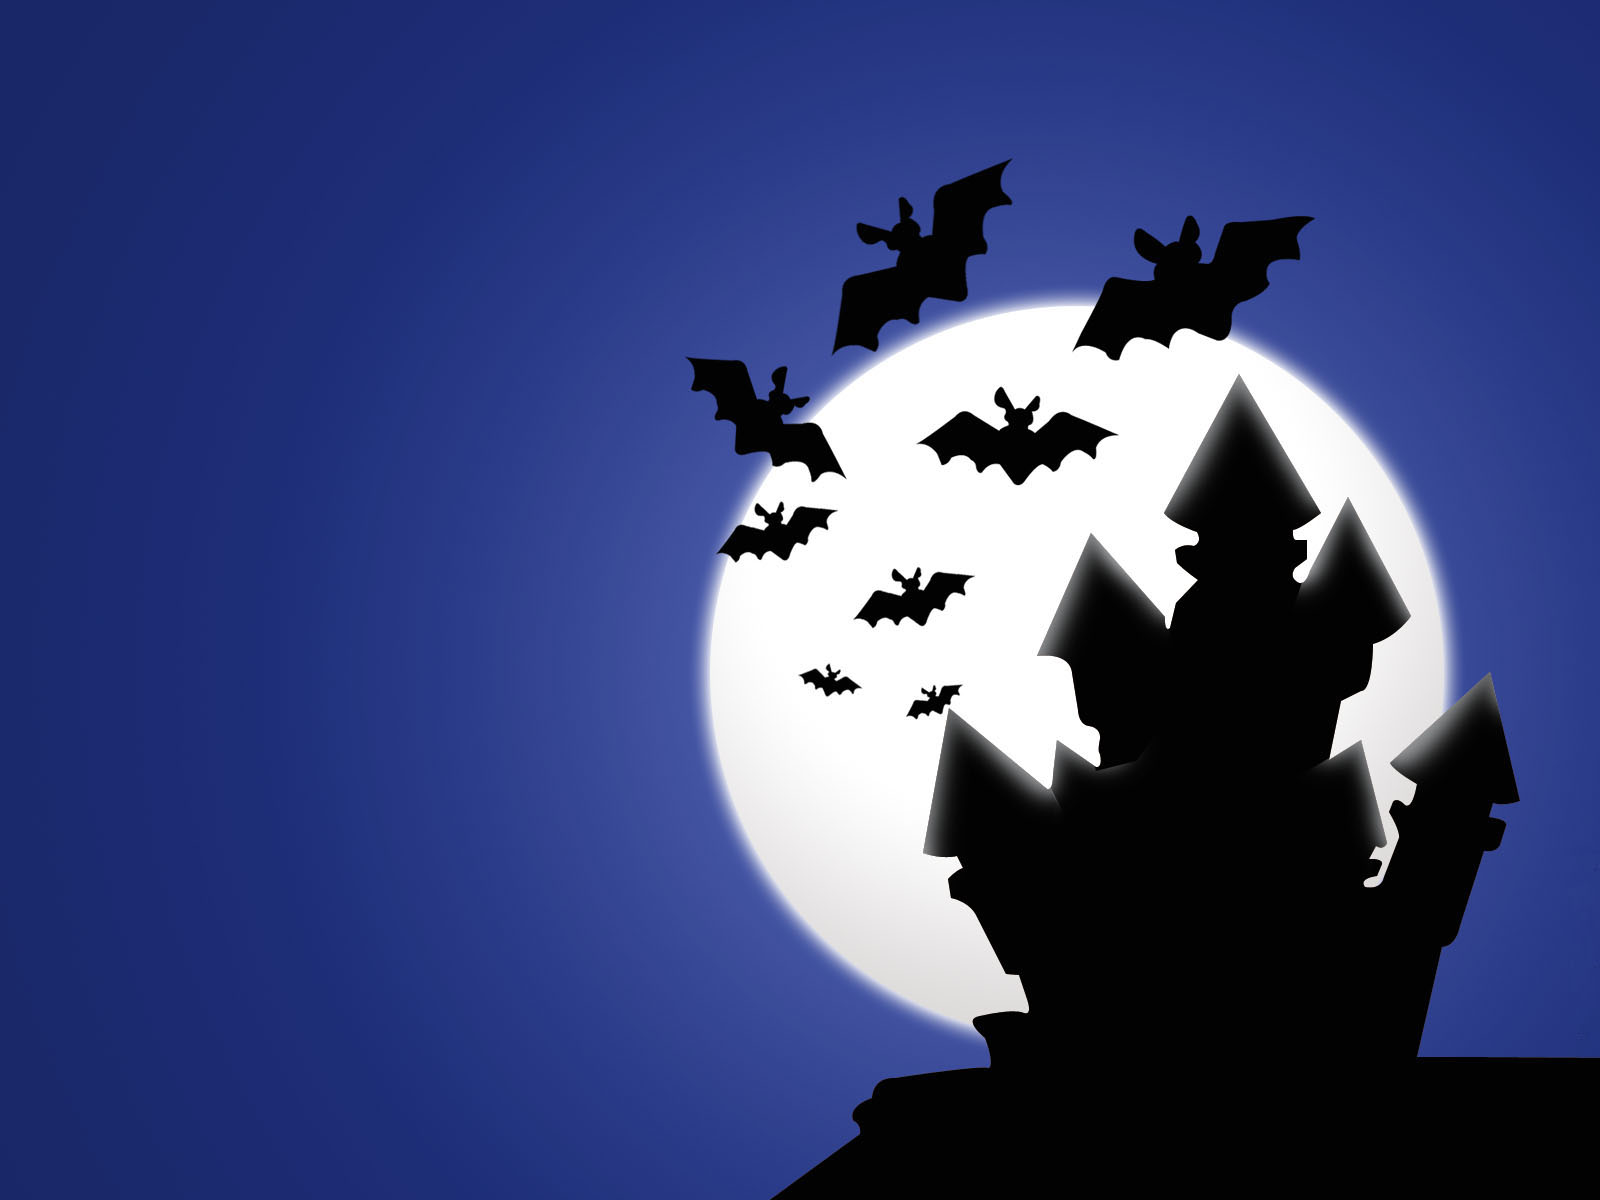 Beautiful hd halloween wallpaper and powerpoint templates free hd halloween wallpaper 5 toneelgroepblik Images